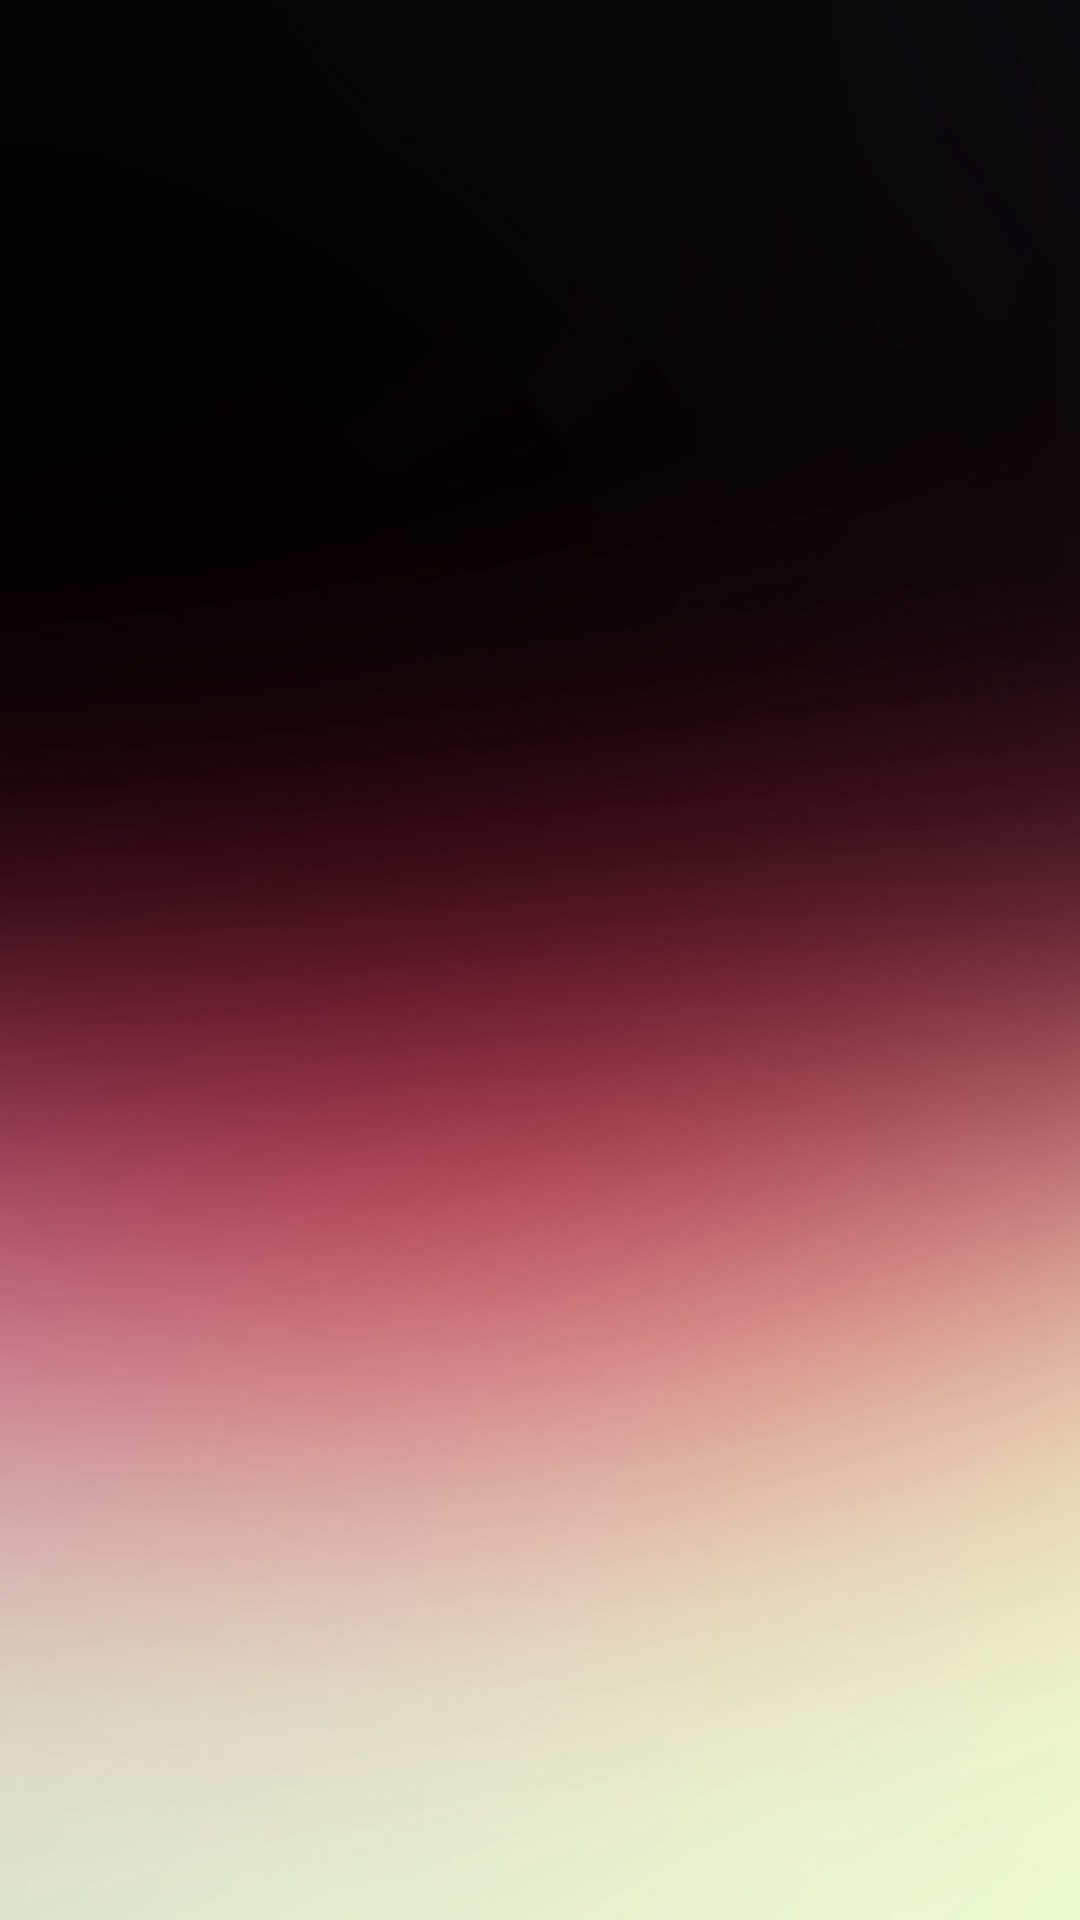 Pink Ombre Wallpaper 60 images 1080x1920